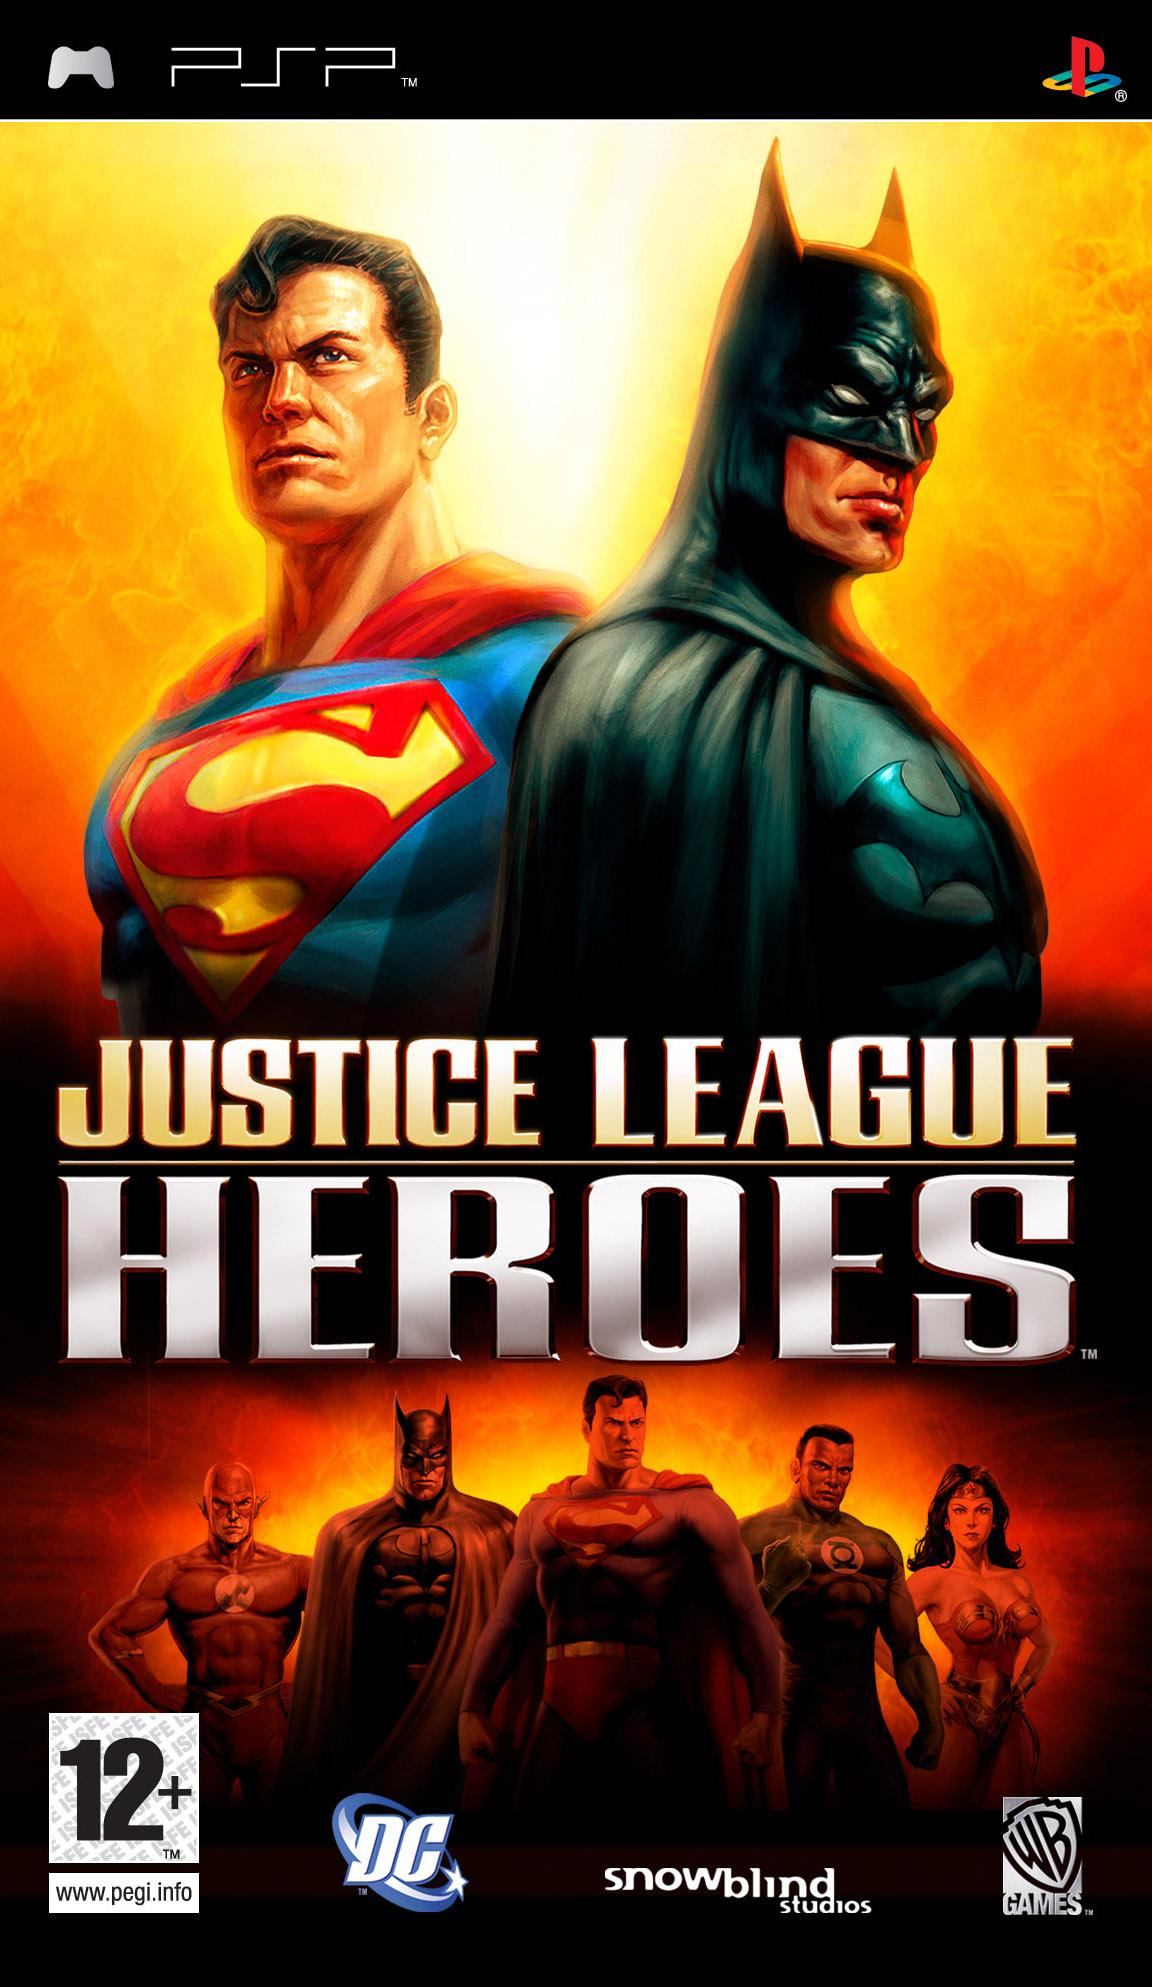 [PSP]Justice League Heroes [2006/ RUS/ENG]